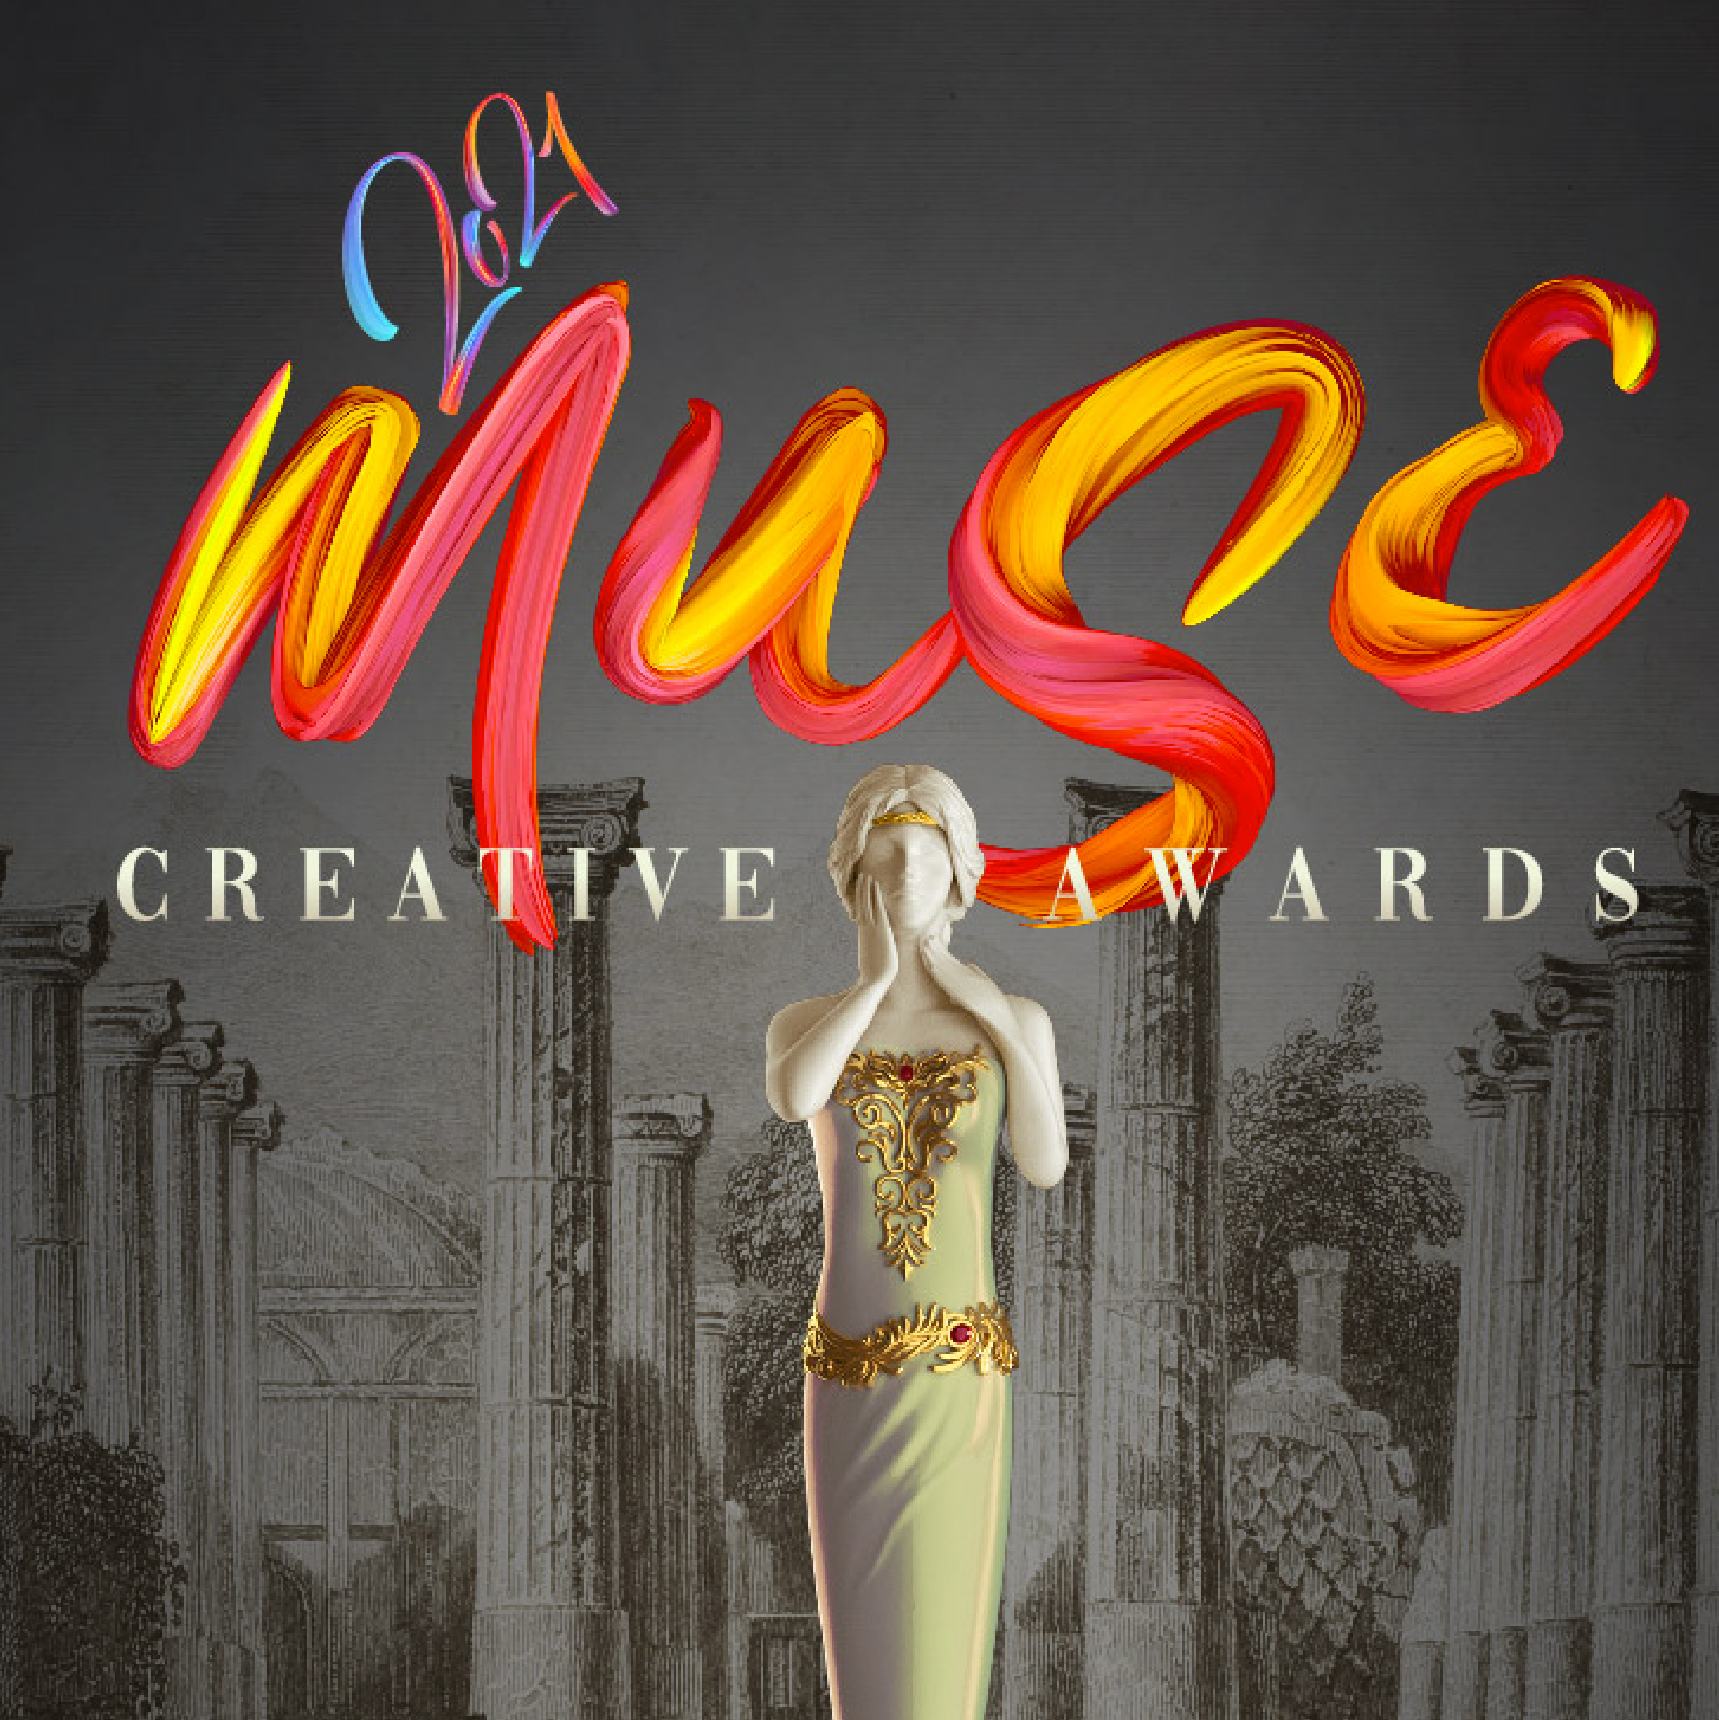 MUSE Creative Awards | 2021 Early bird Call for Entries